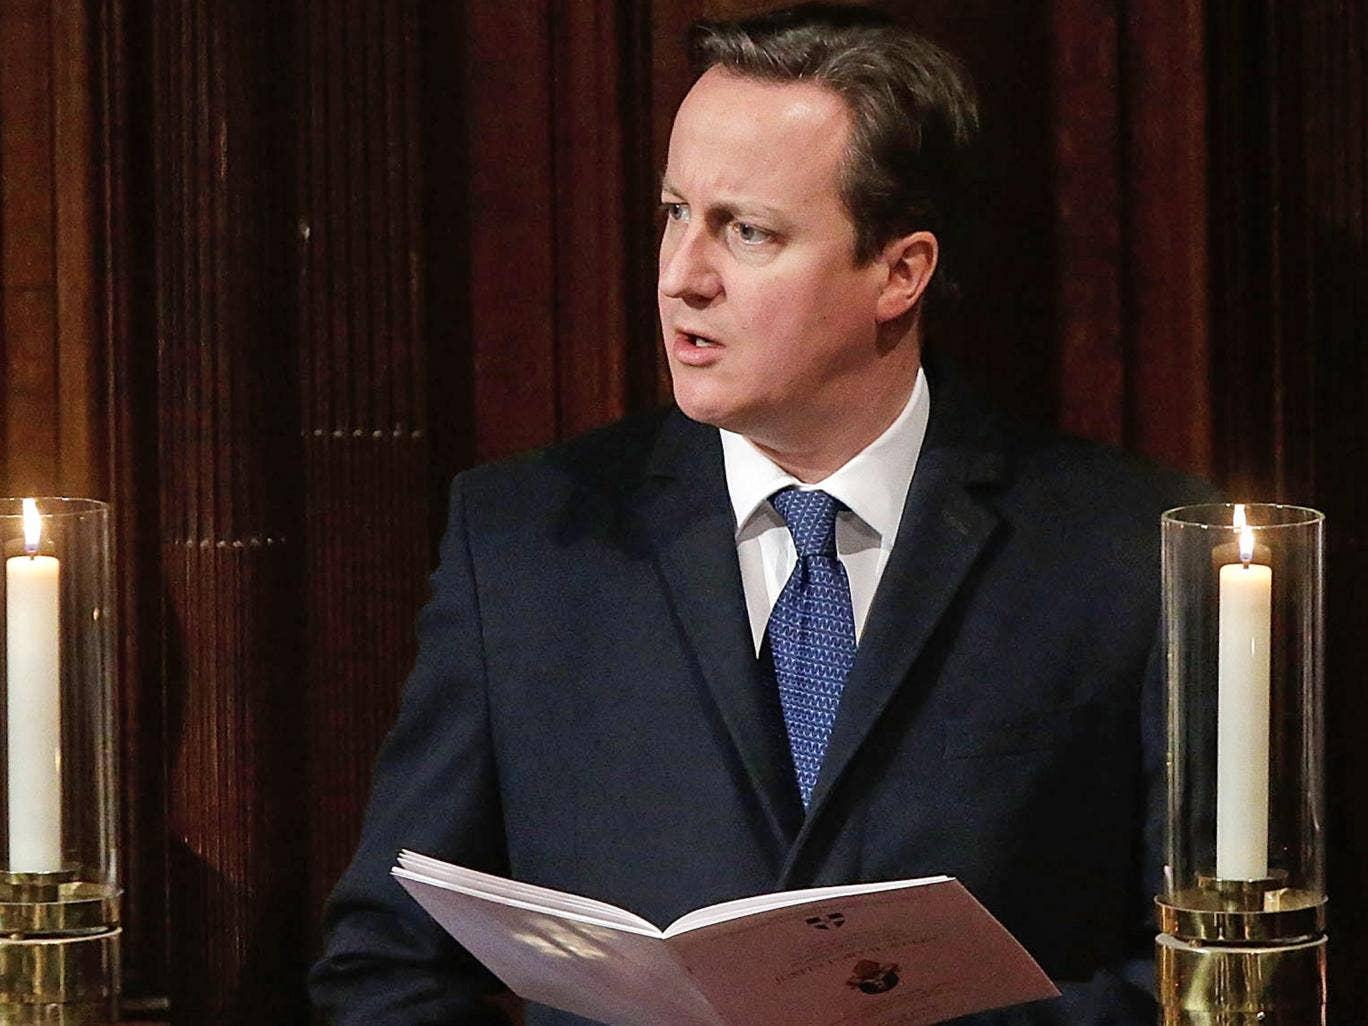 David Cameron sings a hymn during the enthronement service of The Most Rev Justin Welby as Archbishop of Canterbury, at Canterbury Cathedral last year